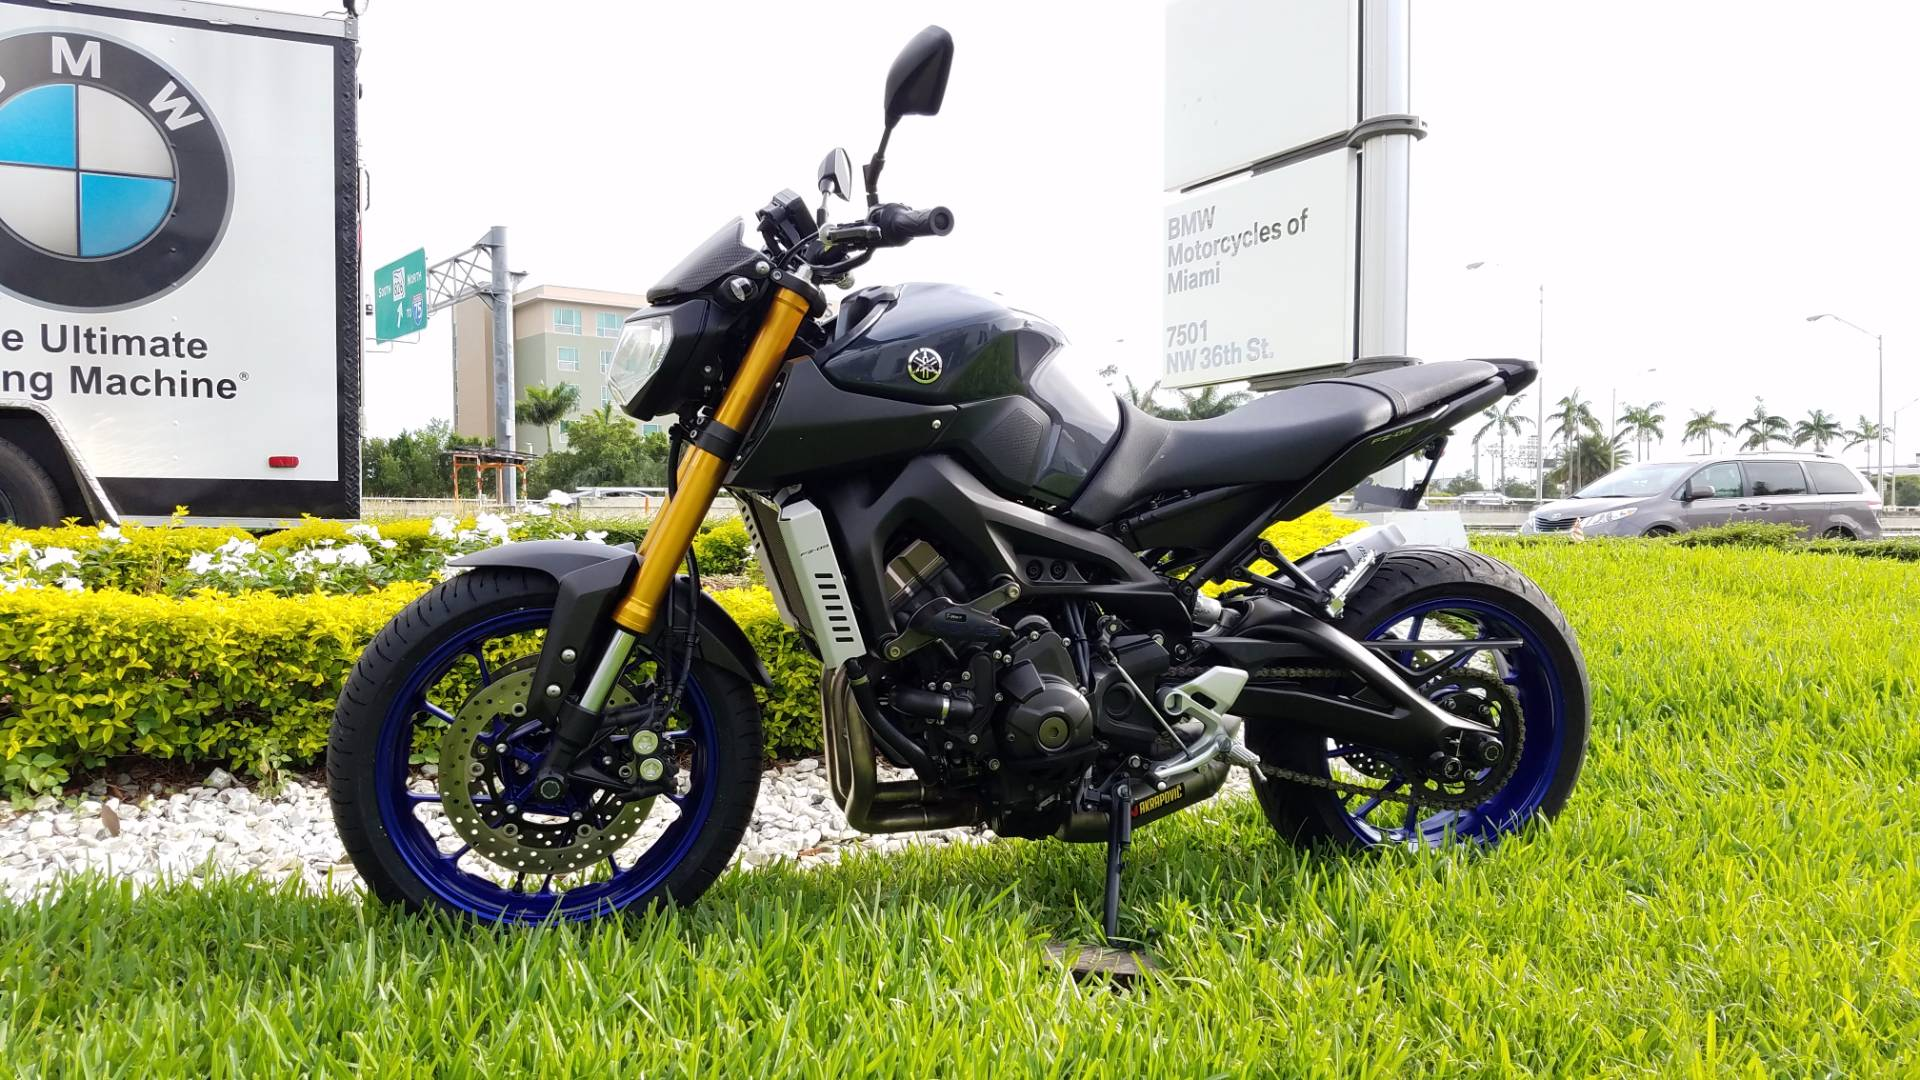 Used 2014 Yamaha FZ 09 For Sale, Yamaha FZ 09 For Sale, Yamaha FZ09, pre-owned Yamaha FZ09 Motorcycle, Yamaha FZ 09, Yamaha FZ09.